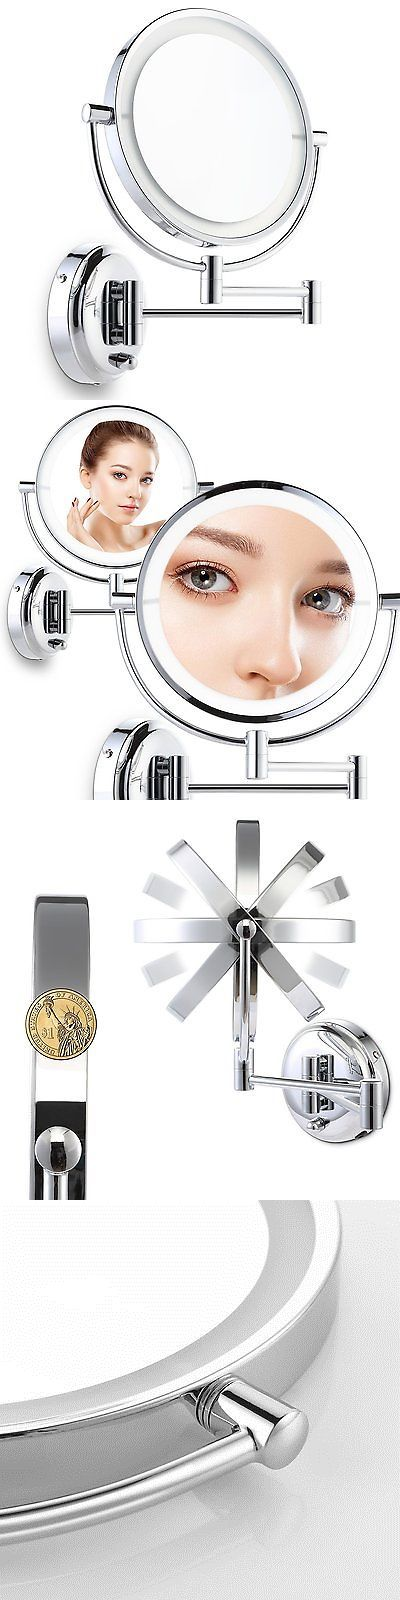 Makeup Mirrors: Miusco Lighted Magnifying Double Side Adjustable Makeup Mirror, Wall-Mounted, 8 -> BUY IT NOW ONLY: $51.59 on eBay!